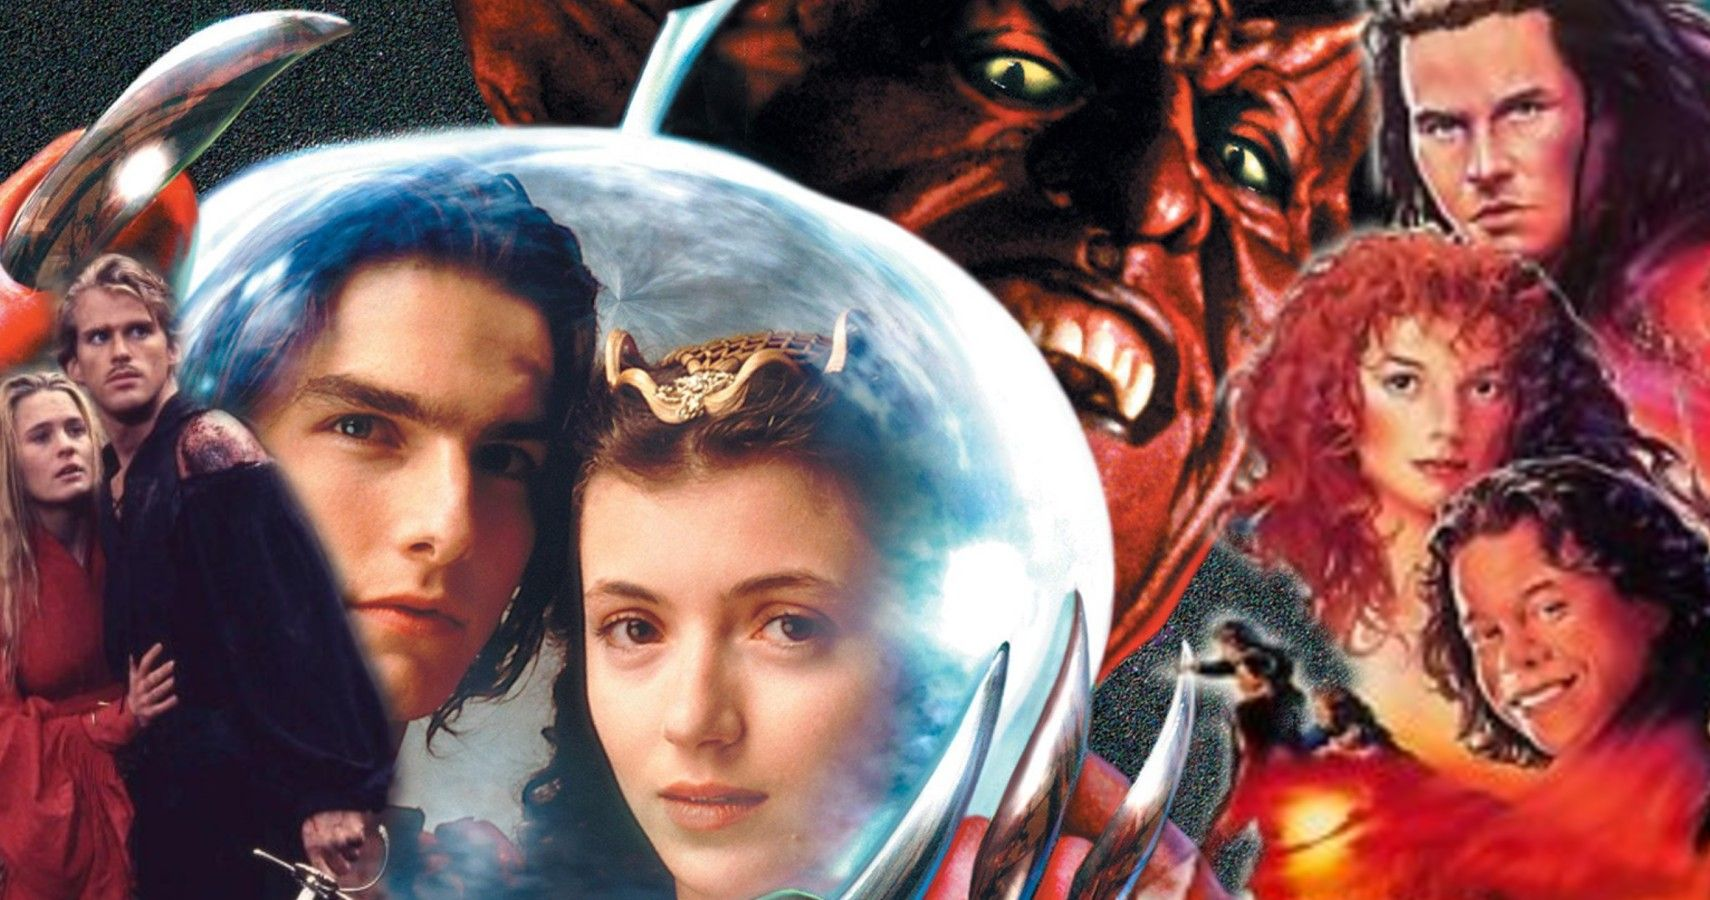 The 10 Best Medieval Fantasy Movies According To Imdb